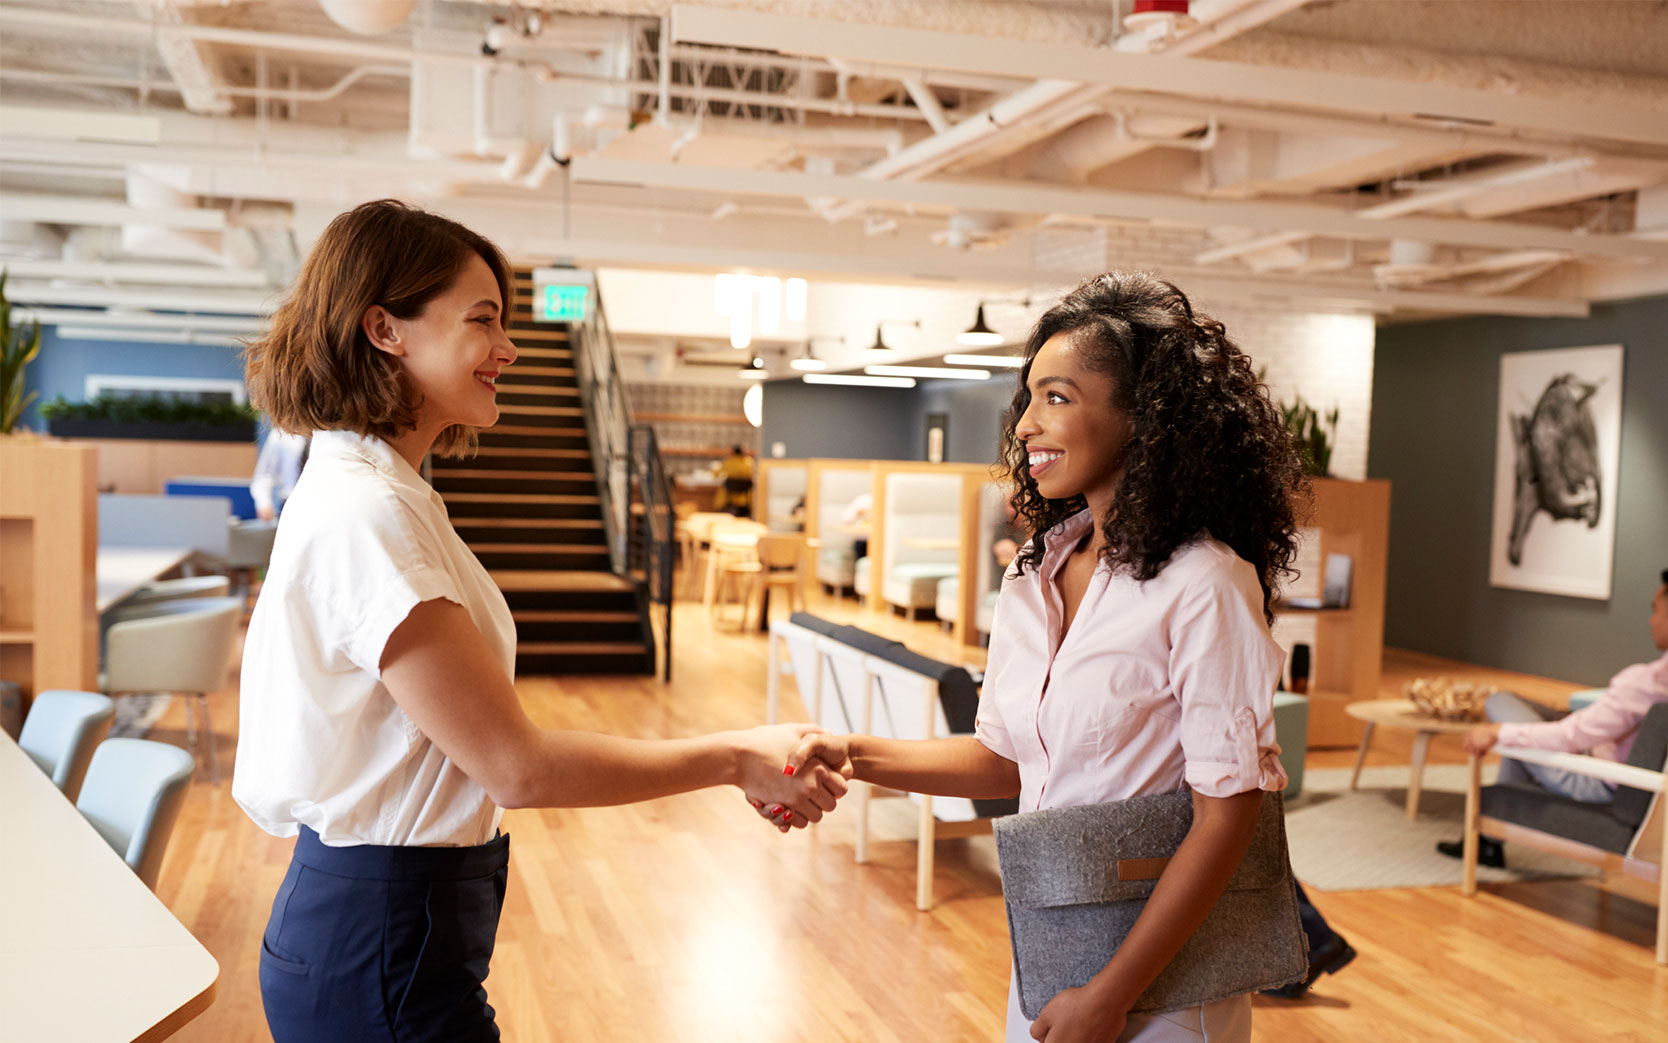 Two coworkers shaking hands in bright office